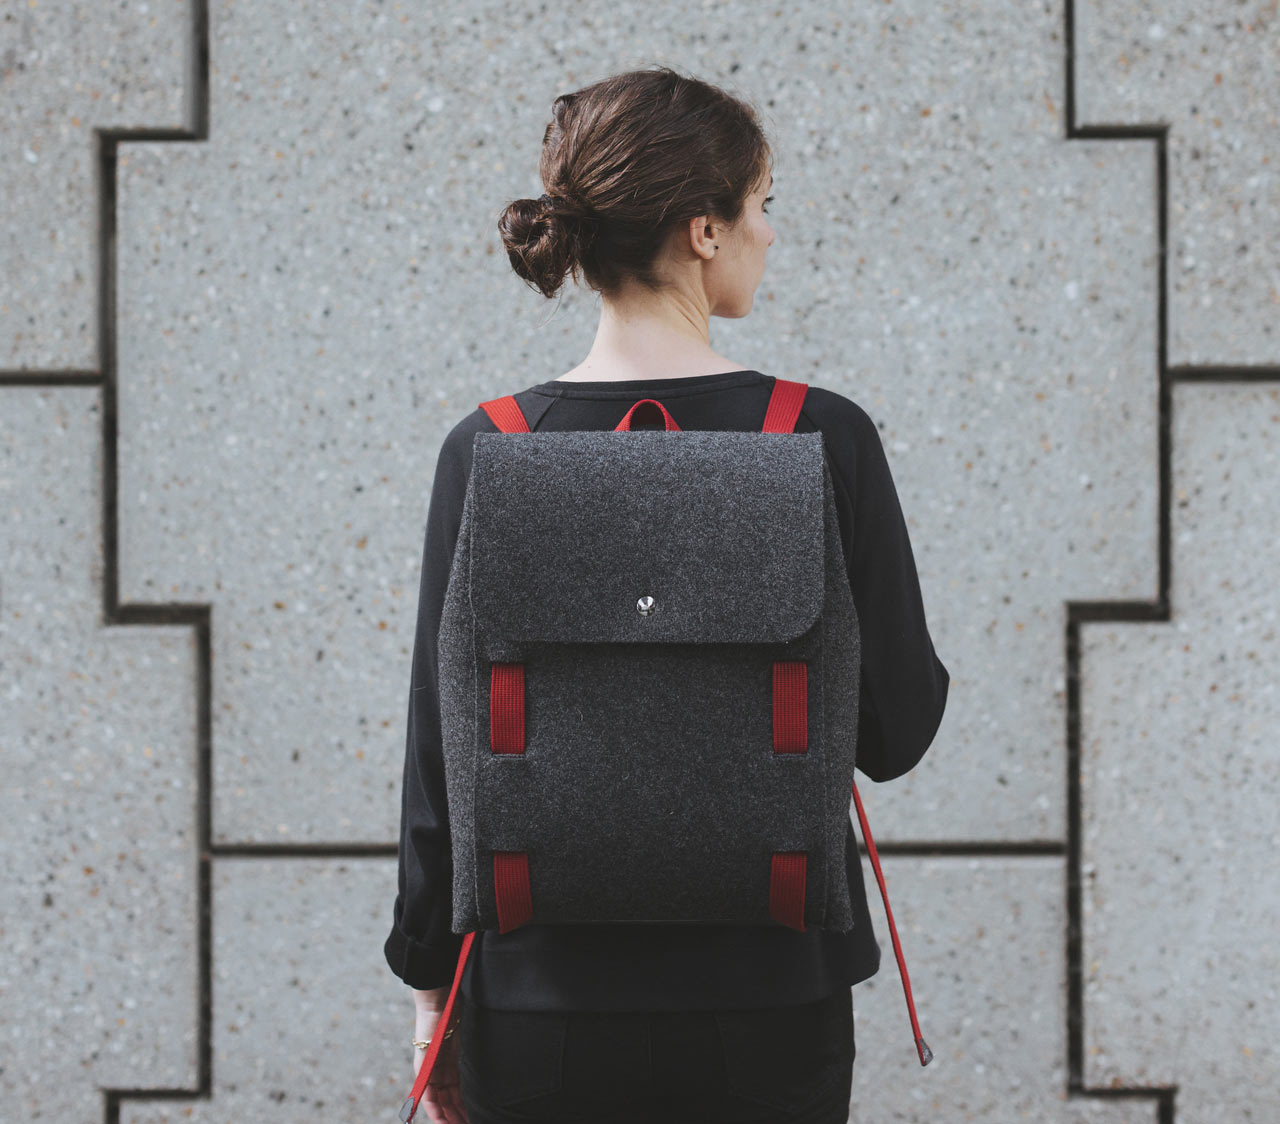 Lasso Is Back with a Wool Felt Bag You Assemble at Home